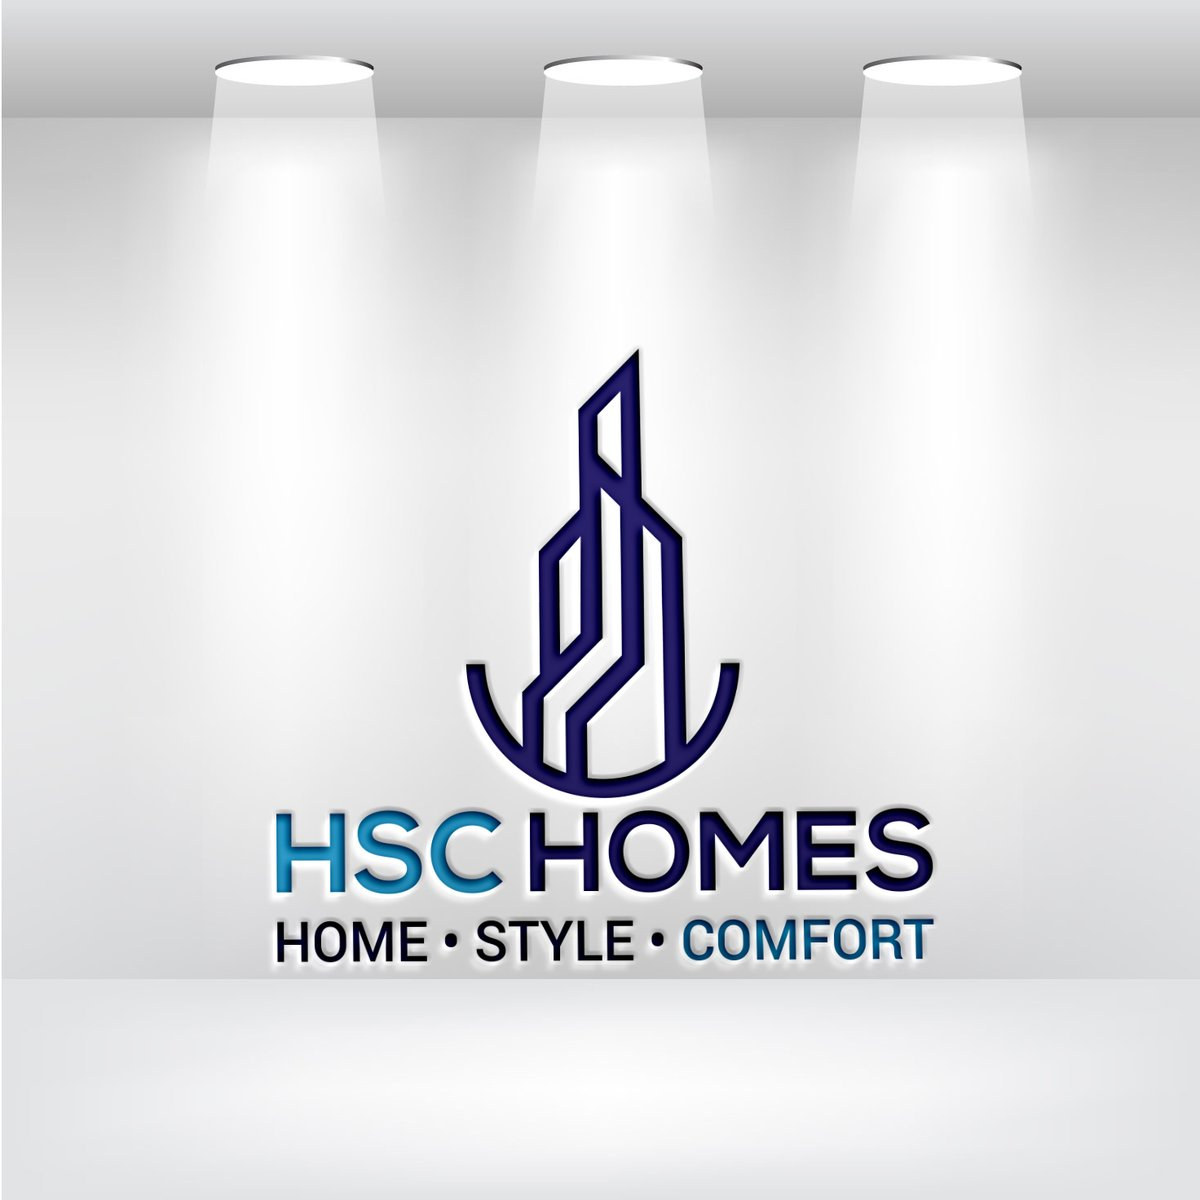 Are you looking for a real estate logo design? I Will Provide You the Best Quality Of Designs With Unlimited Revision Until You Are Fully Satisfied. Contact me:   #UFC259 #SundayMorning #SundayThoughts #SundayMotivation #SocialistSunday #MCIMUN #MOTD